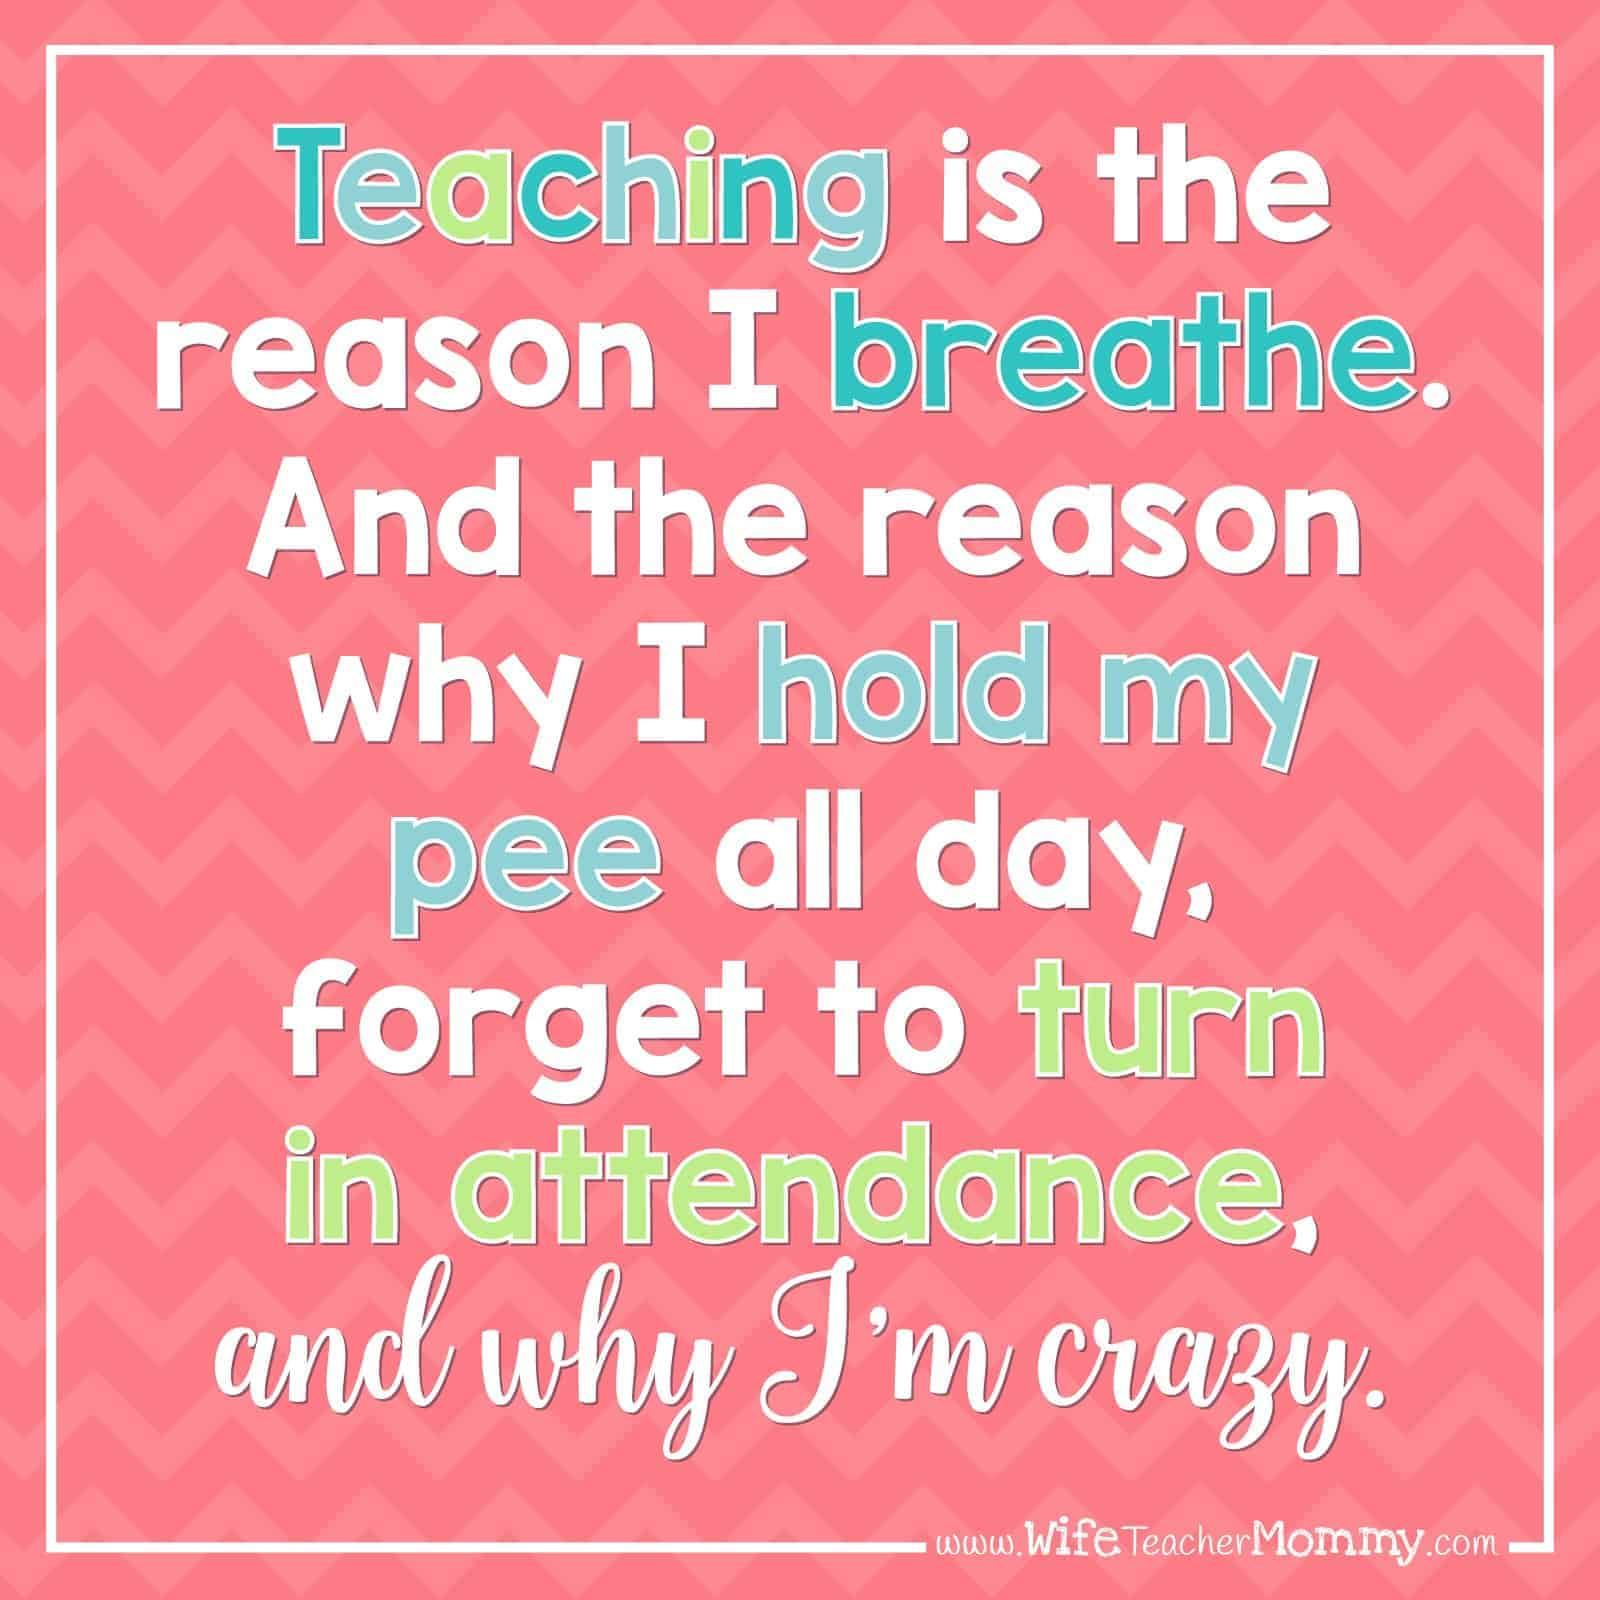 Teaching is the reason I breathe. And the reason why I hold my pee all day, forget to turn in attendance, and why I'm crazy.